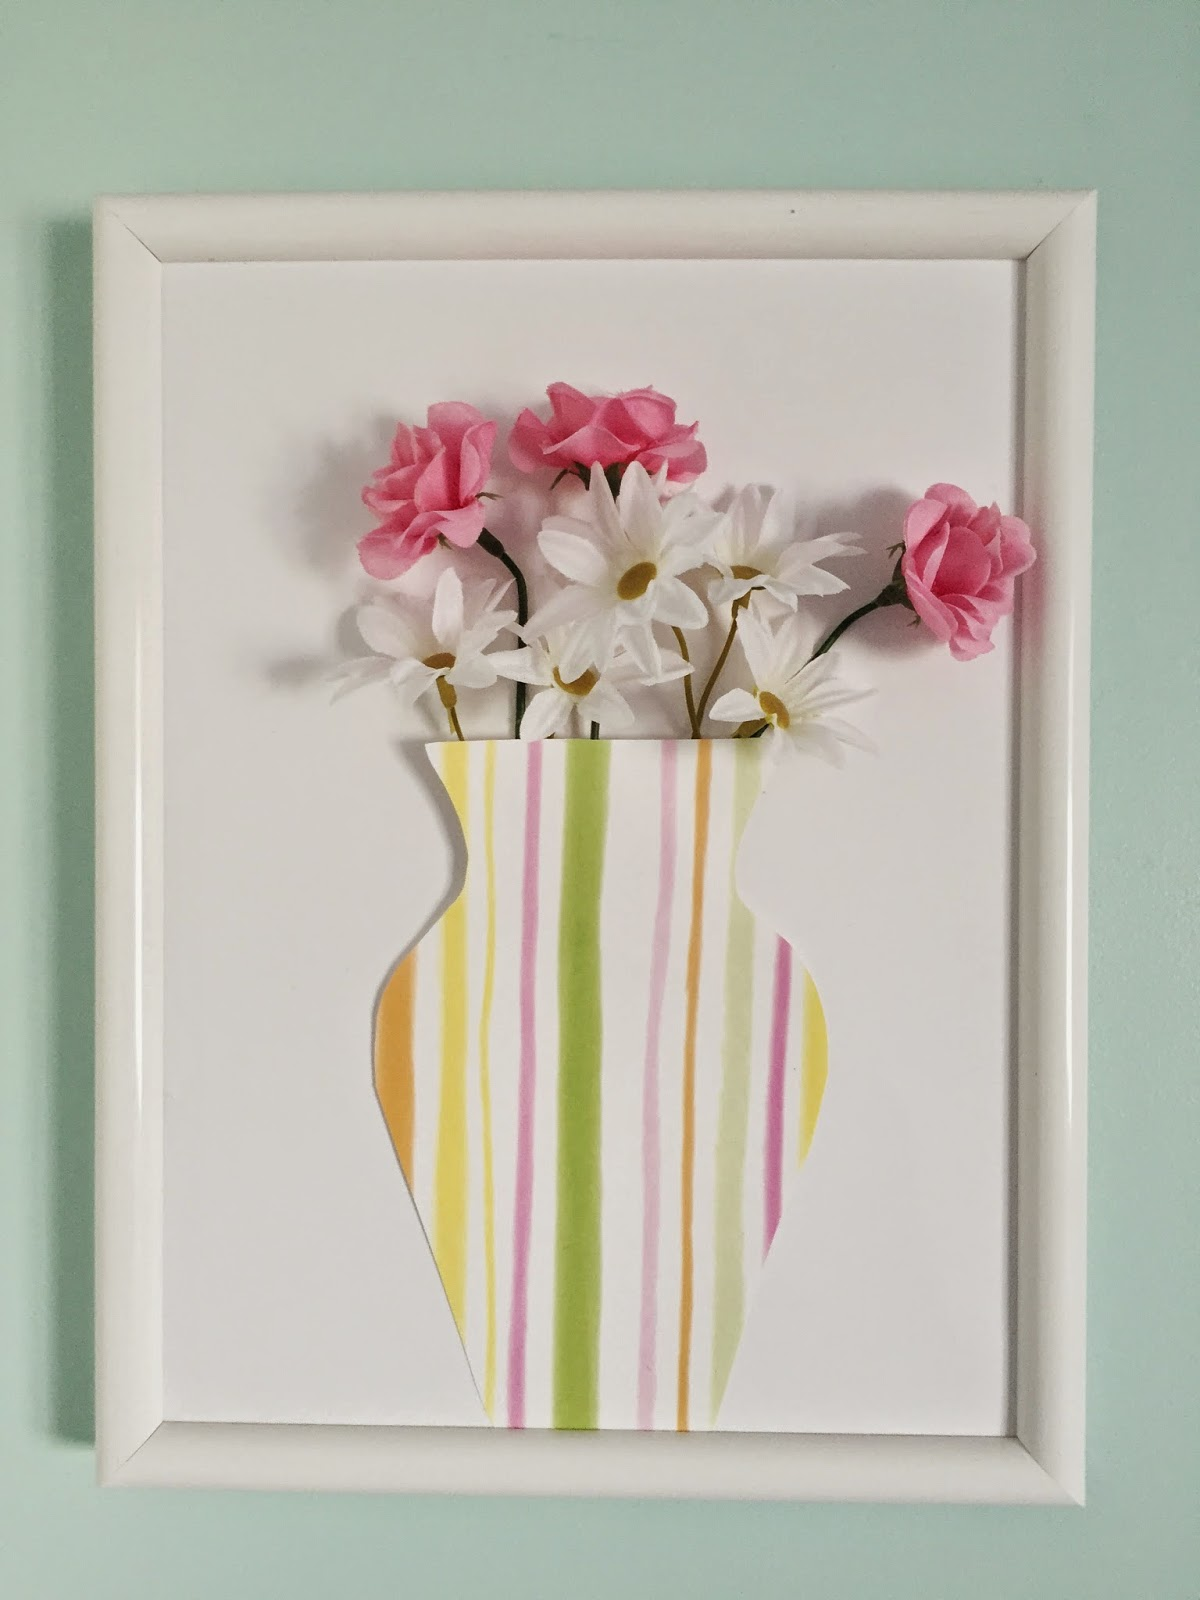 Diy Spring Wall Decor : The trendy chick diy d spring wall decor